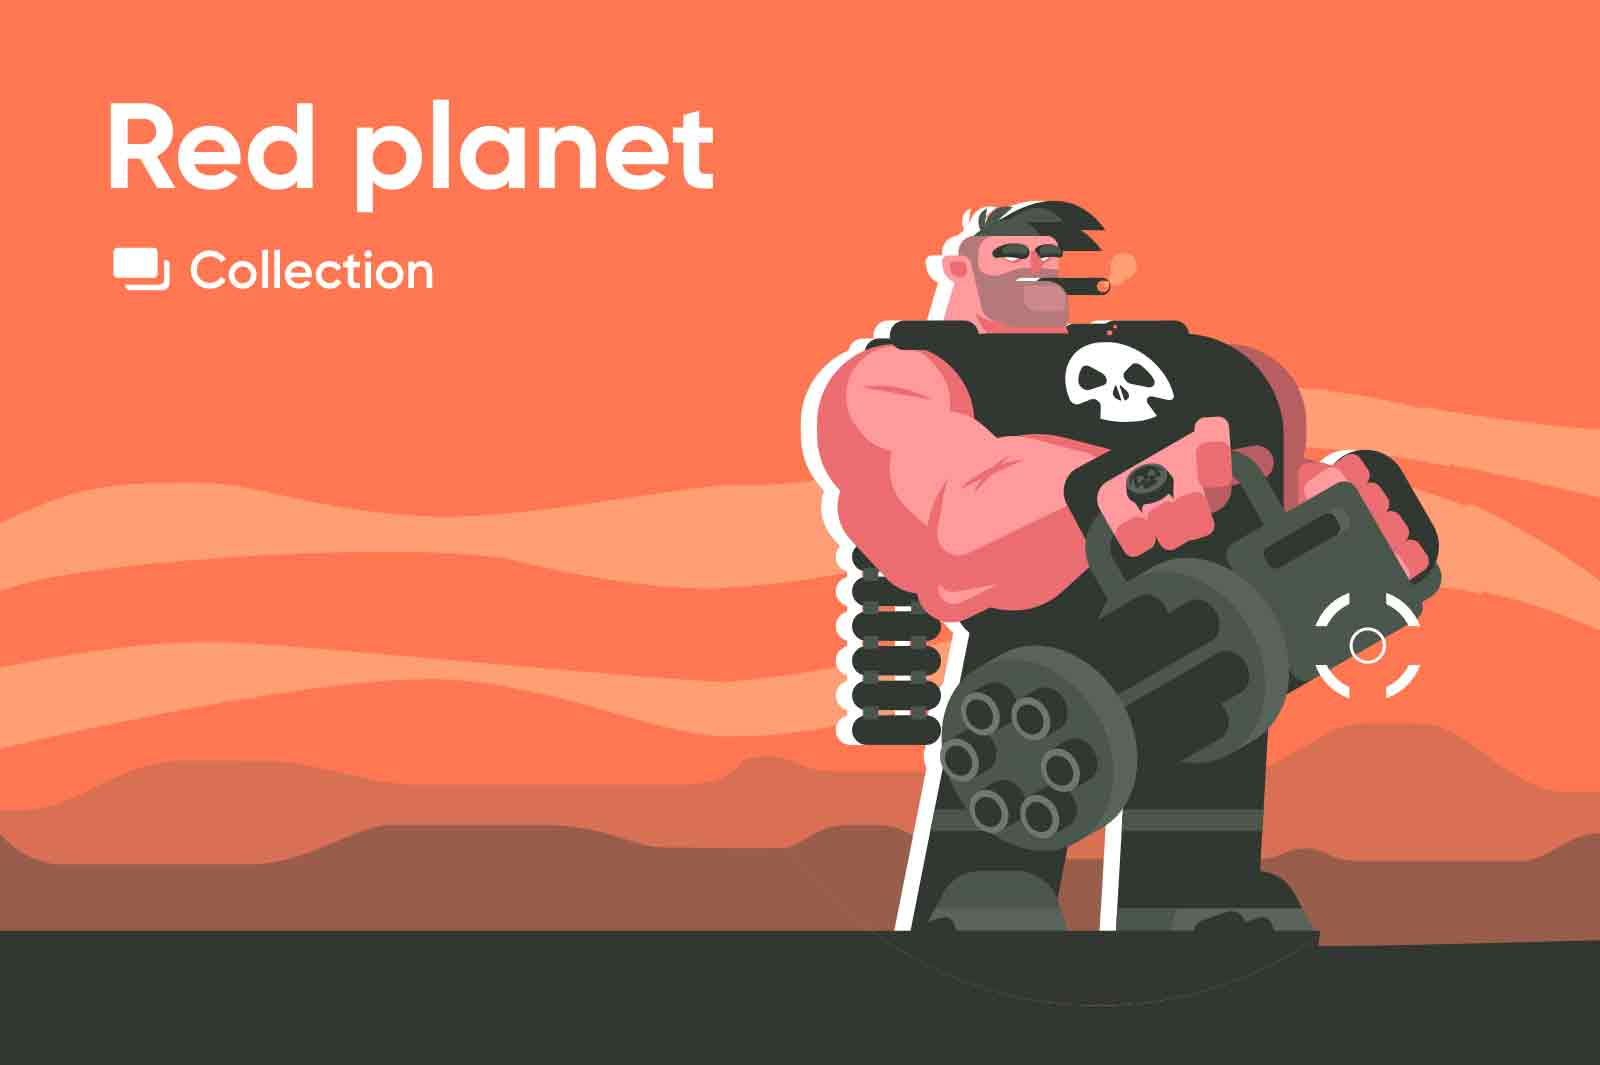 Brutal character illustration series made in classic flat style with and atmosphere Mars planet.